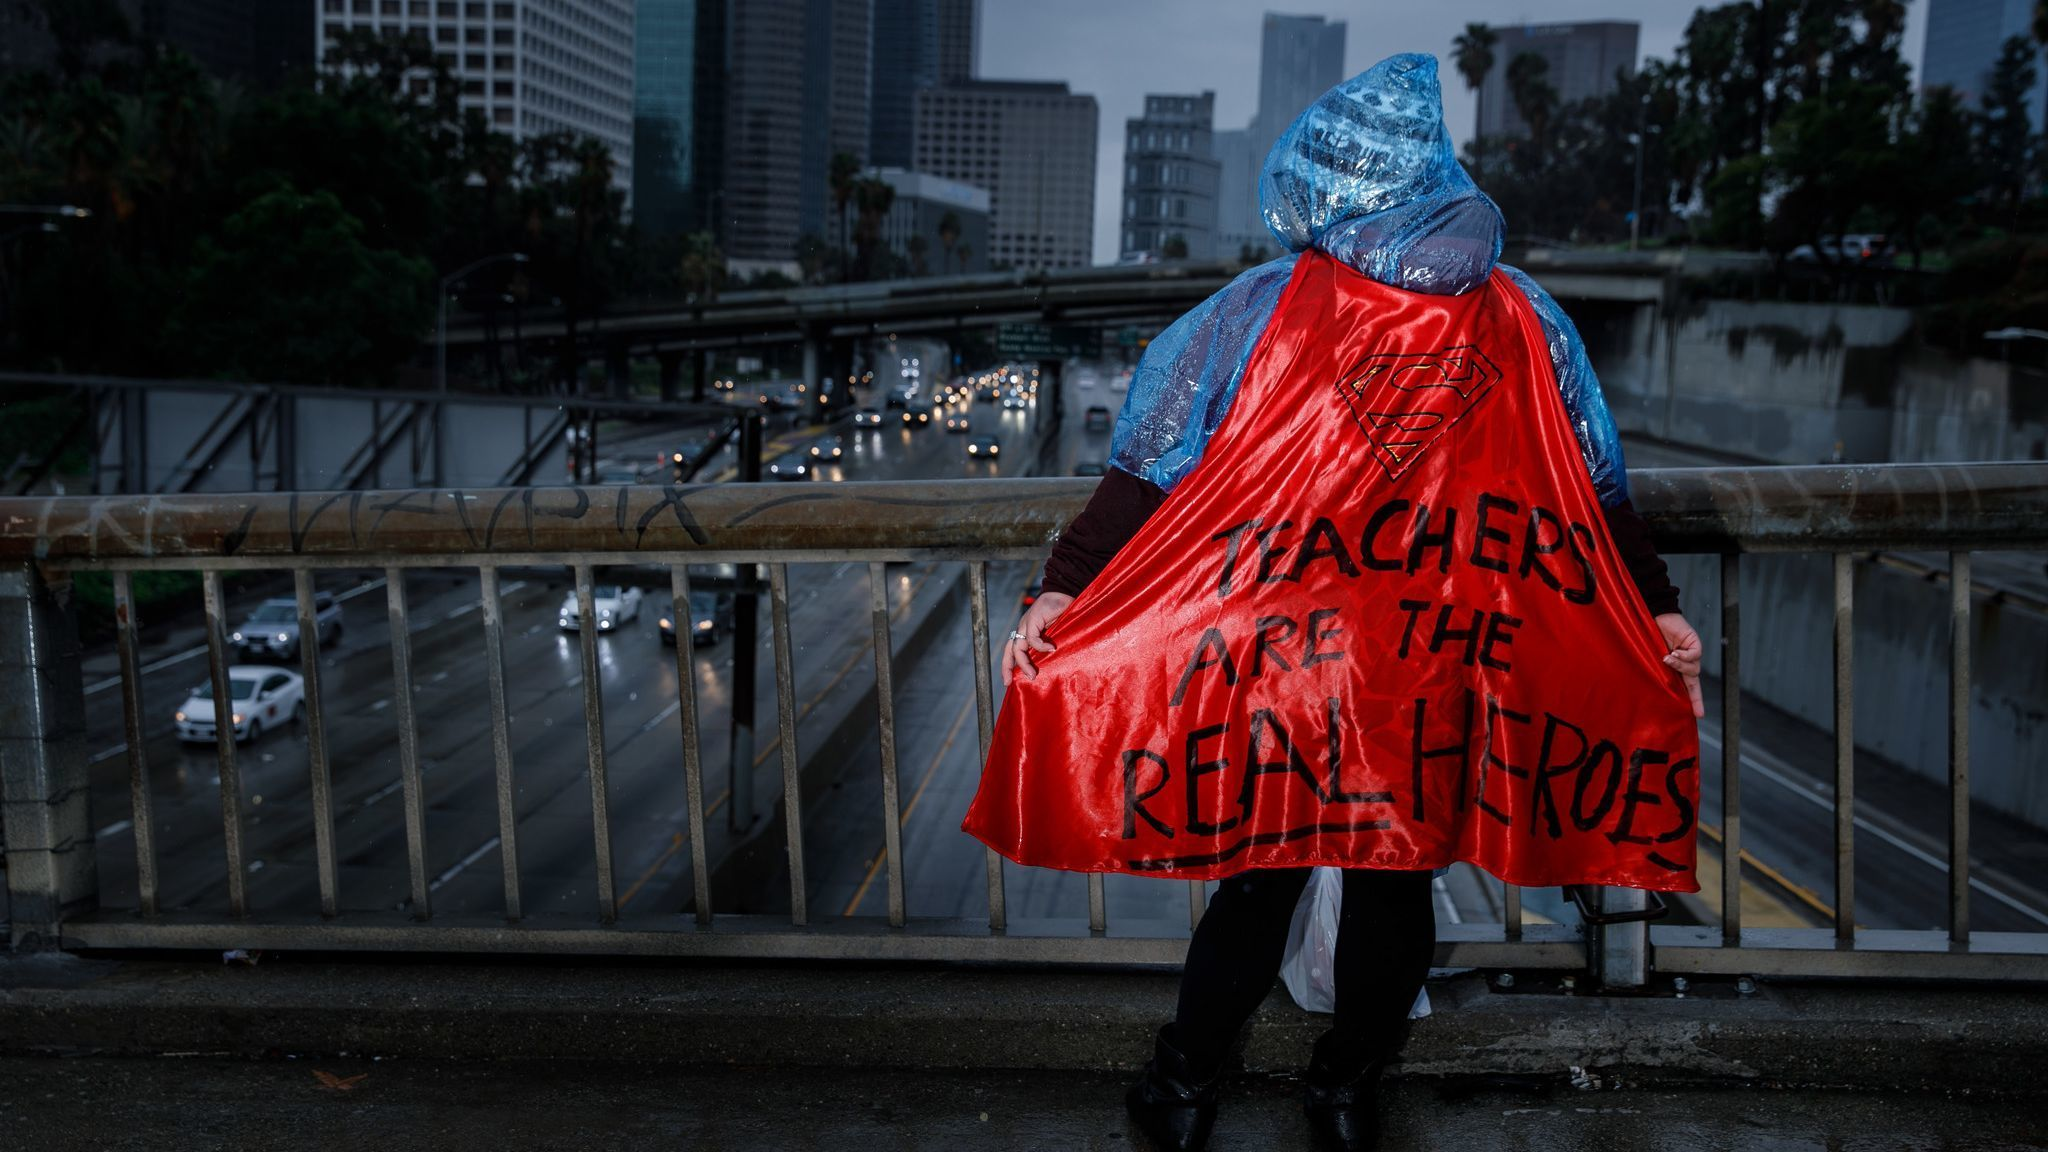 LOS ANGELES, CALIF. — MONDAY, JANUARY 14, 2019: A supporter for the UTLA strike sports a cape with